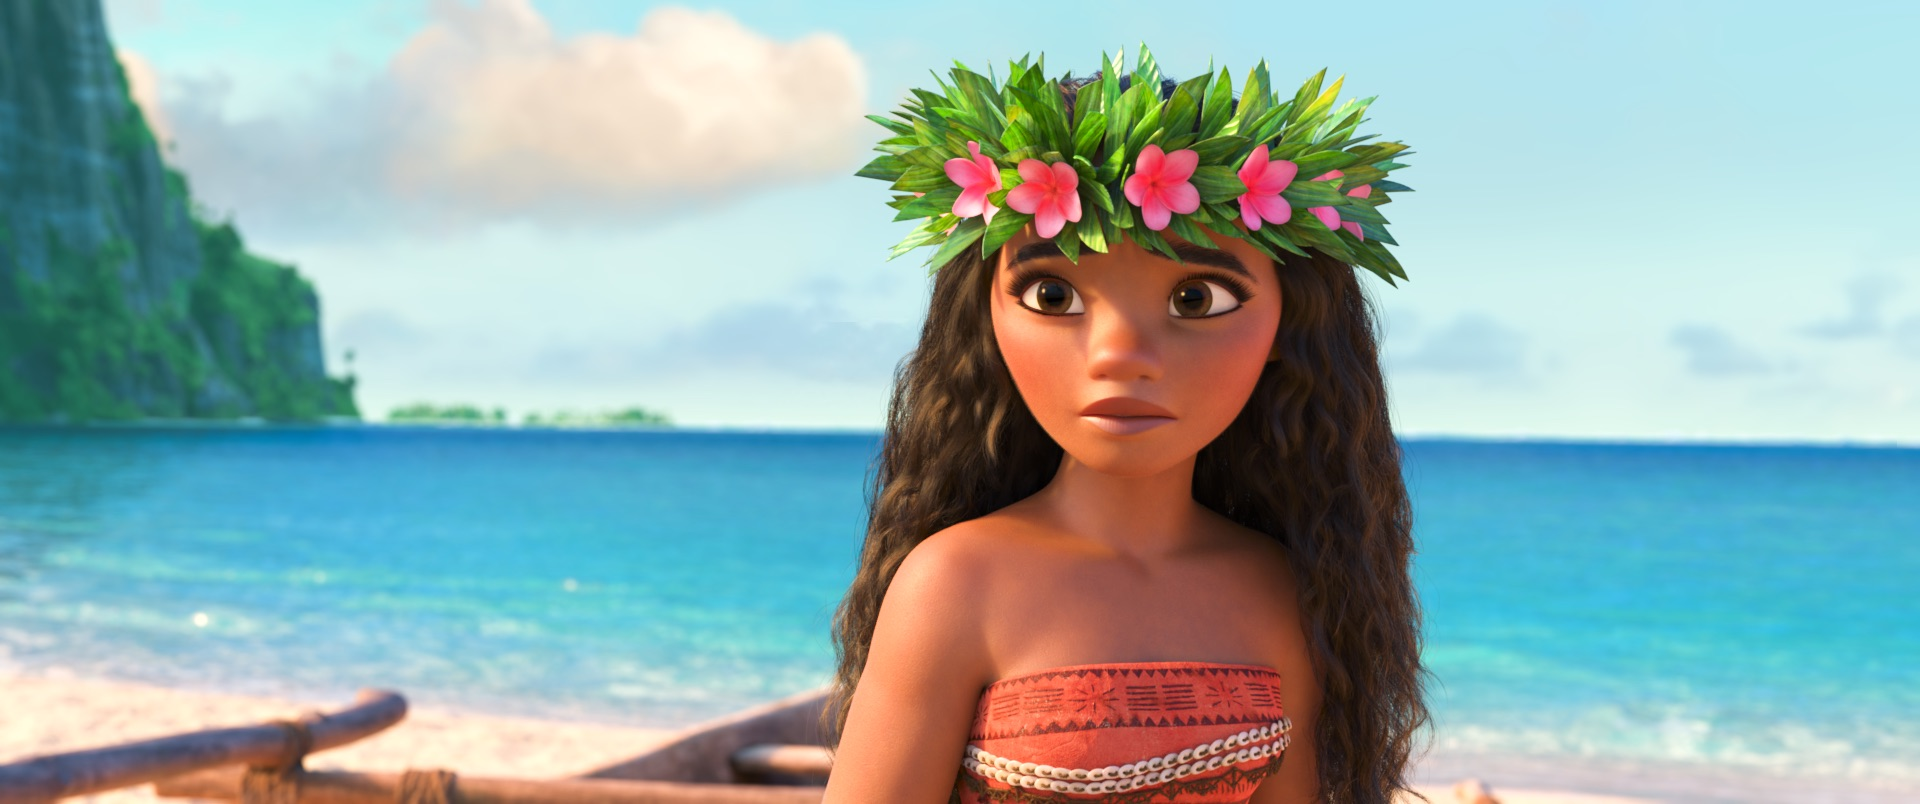 Watch Disney's Moana in Dolby Cinema at AMC Las Vegas